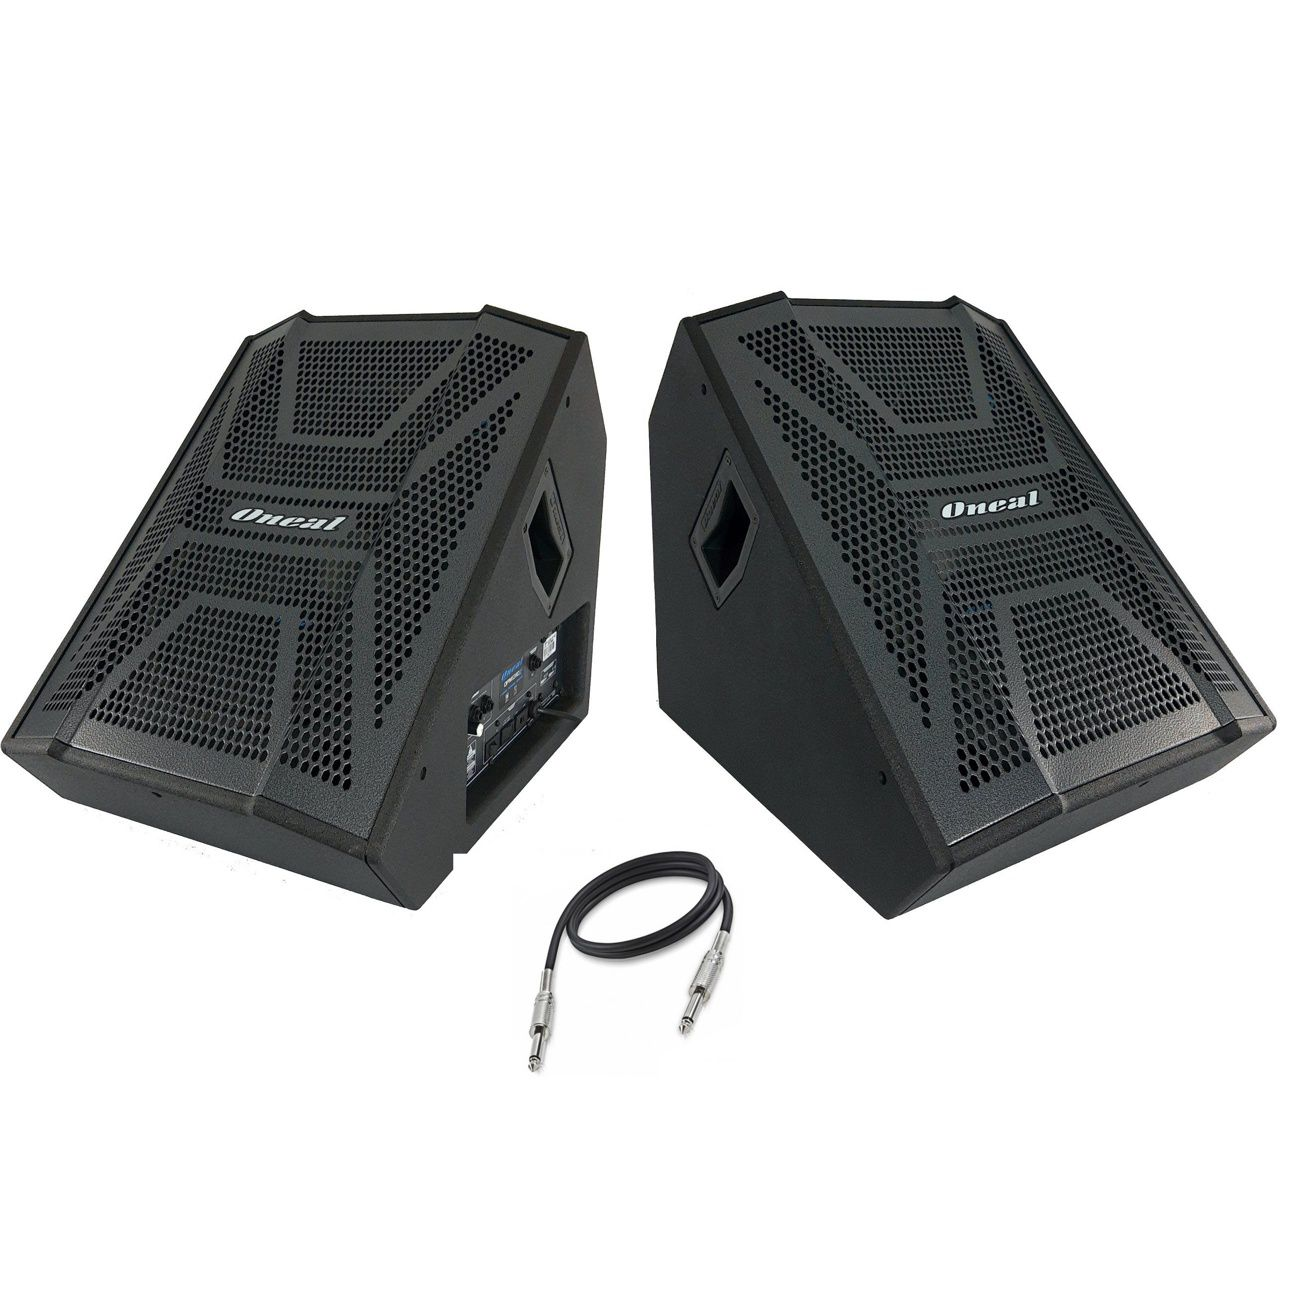 Kit Monitor Palco Ativo Passivo Oneal Opm1312x Obm1312x 200w Rms